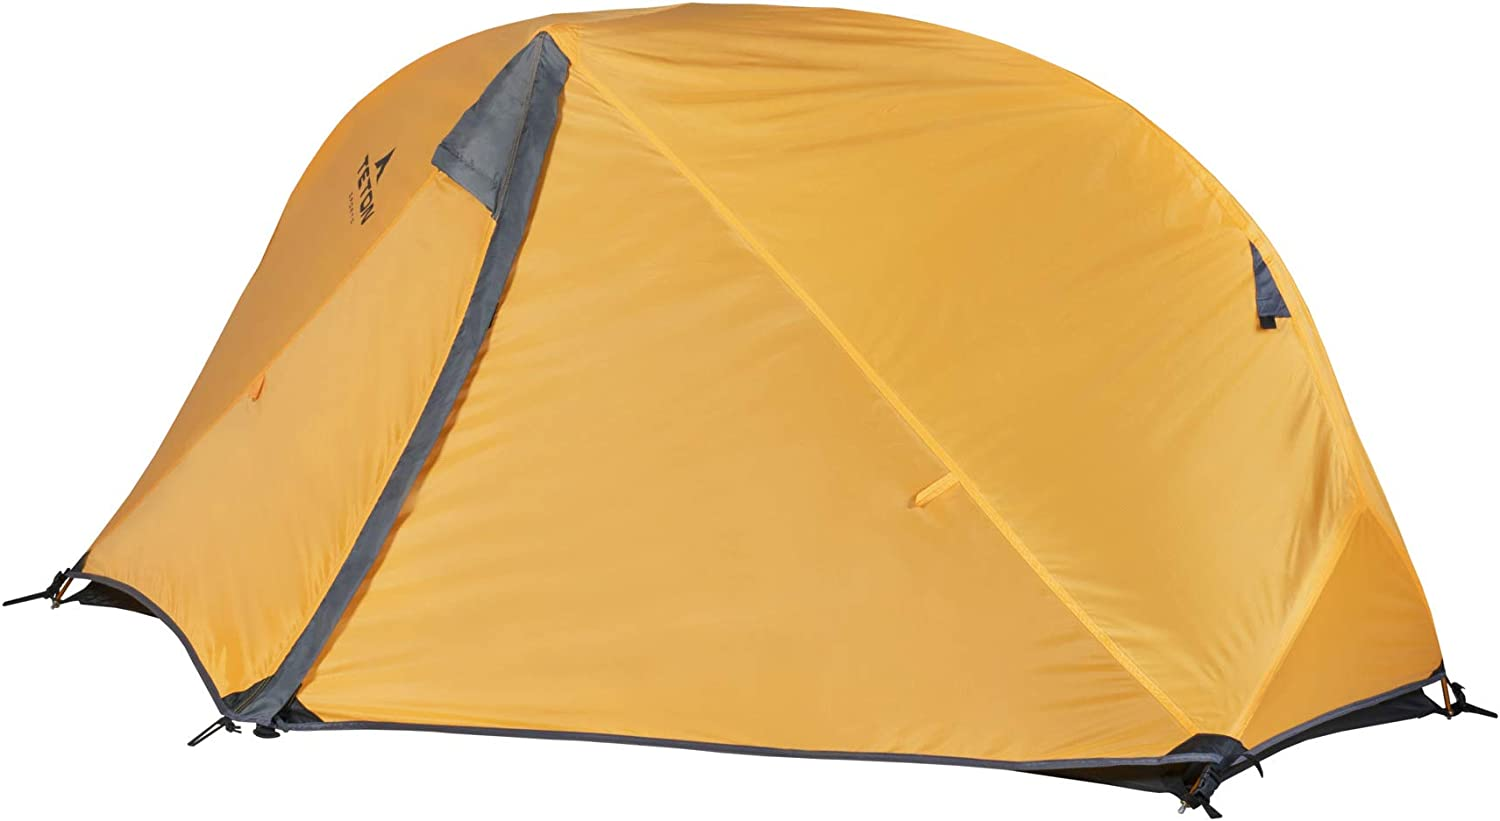 TETON Sports Mountain Ultra Tent 1-4 Person Backpacking Dome Tent Great for Camping Waterproof Tent with Footprint Included